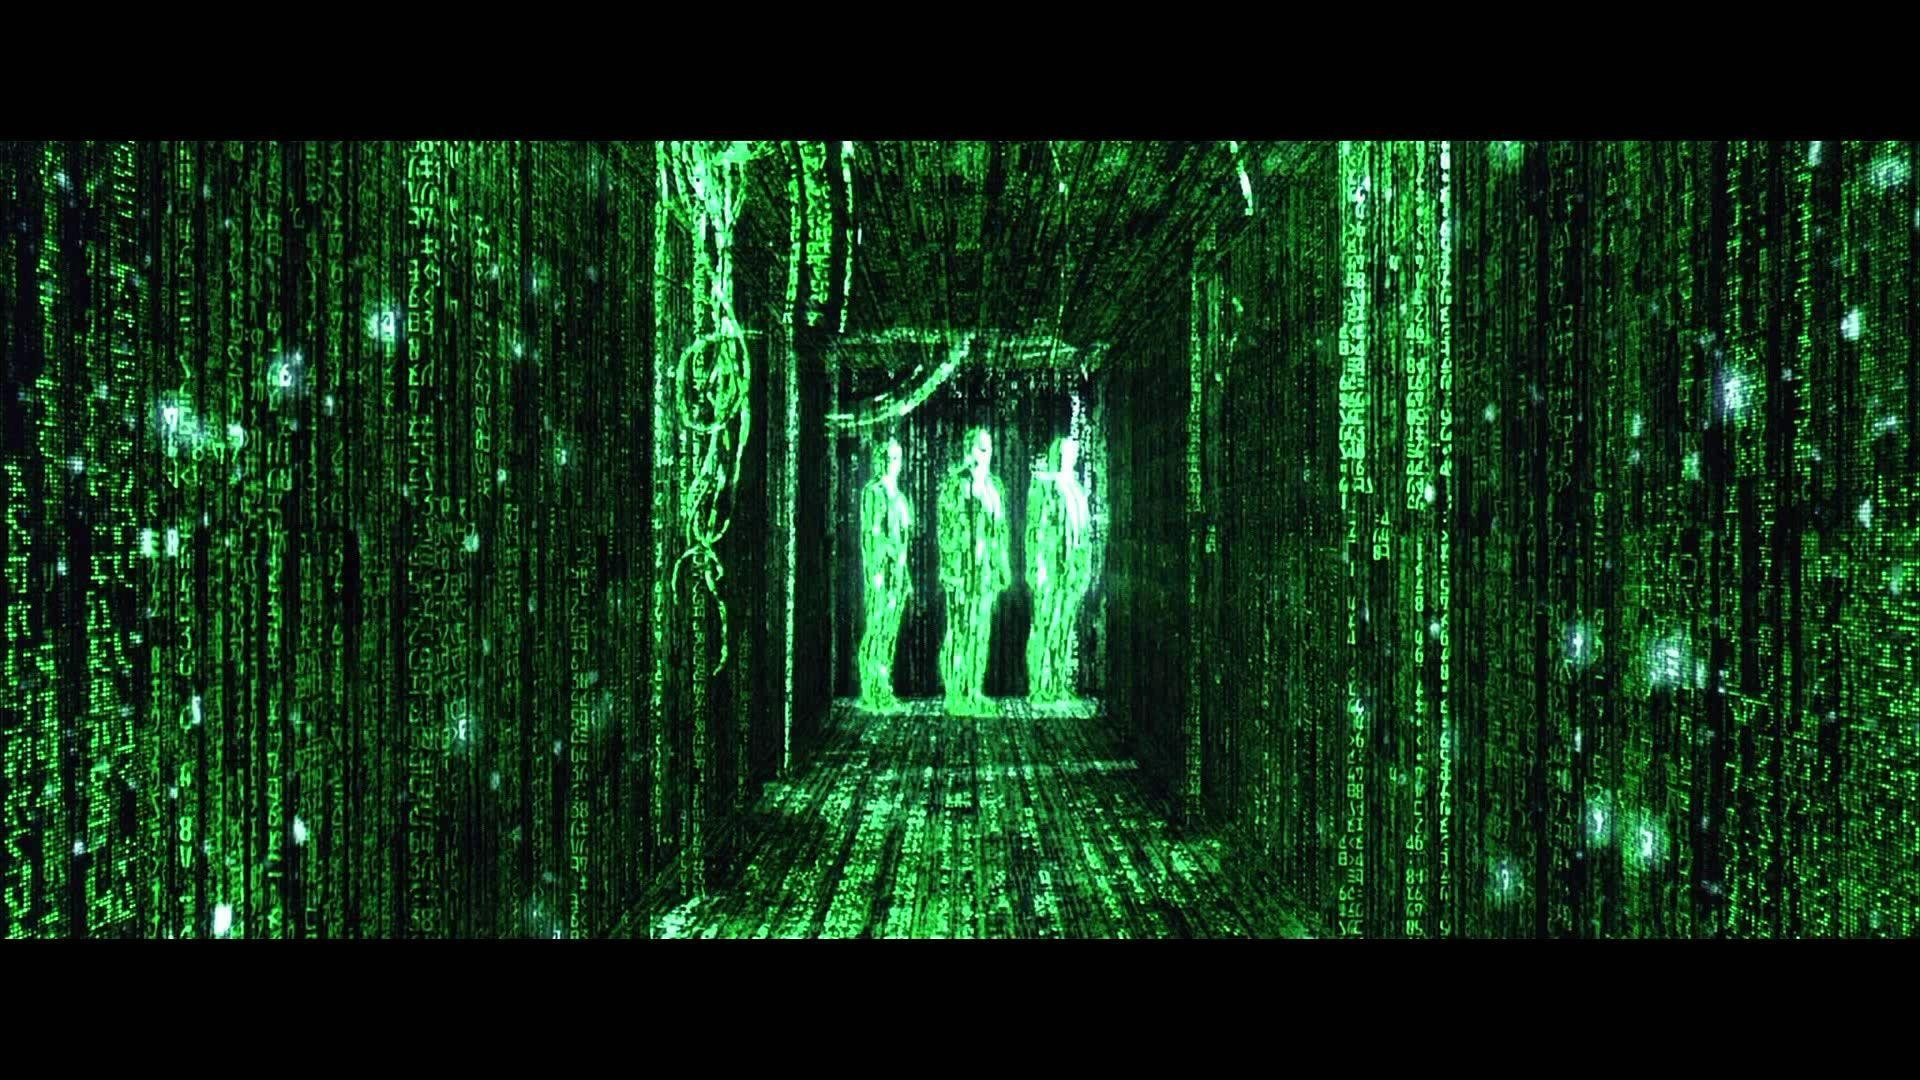 Matrix Movie Hd Wallpaper Film Images 1920x1080PX ~ Wallpaper ...